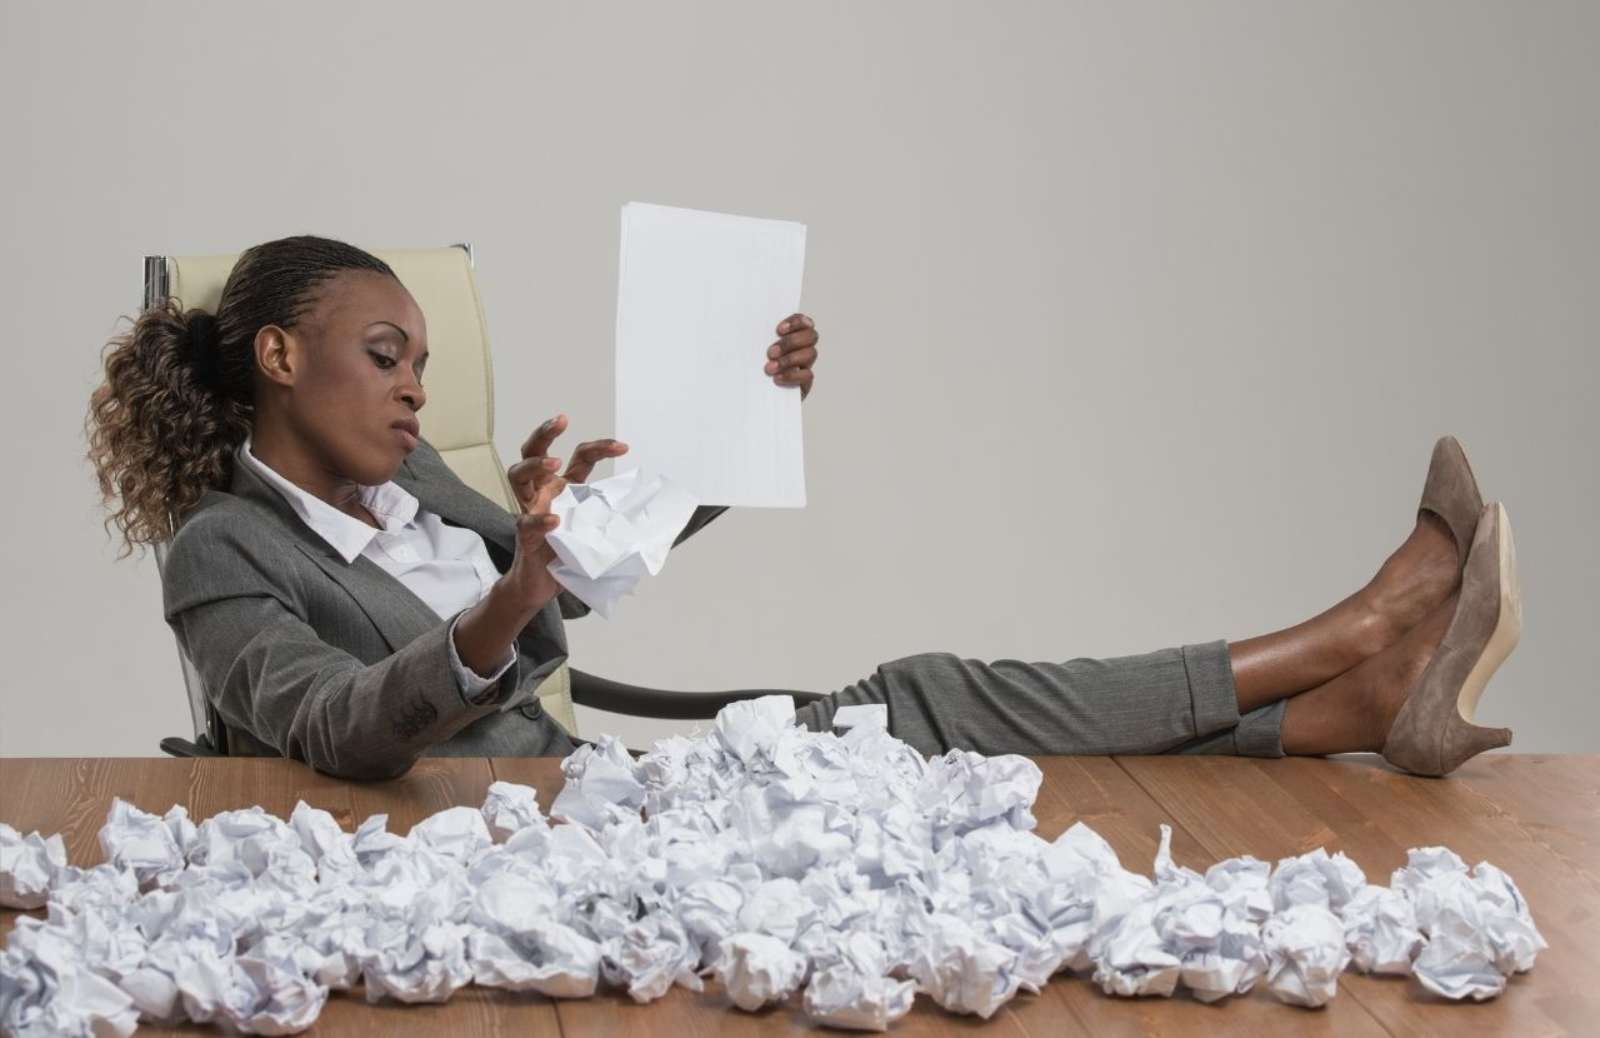 Business woman sitting with feet up on desk covered with balled-up paper